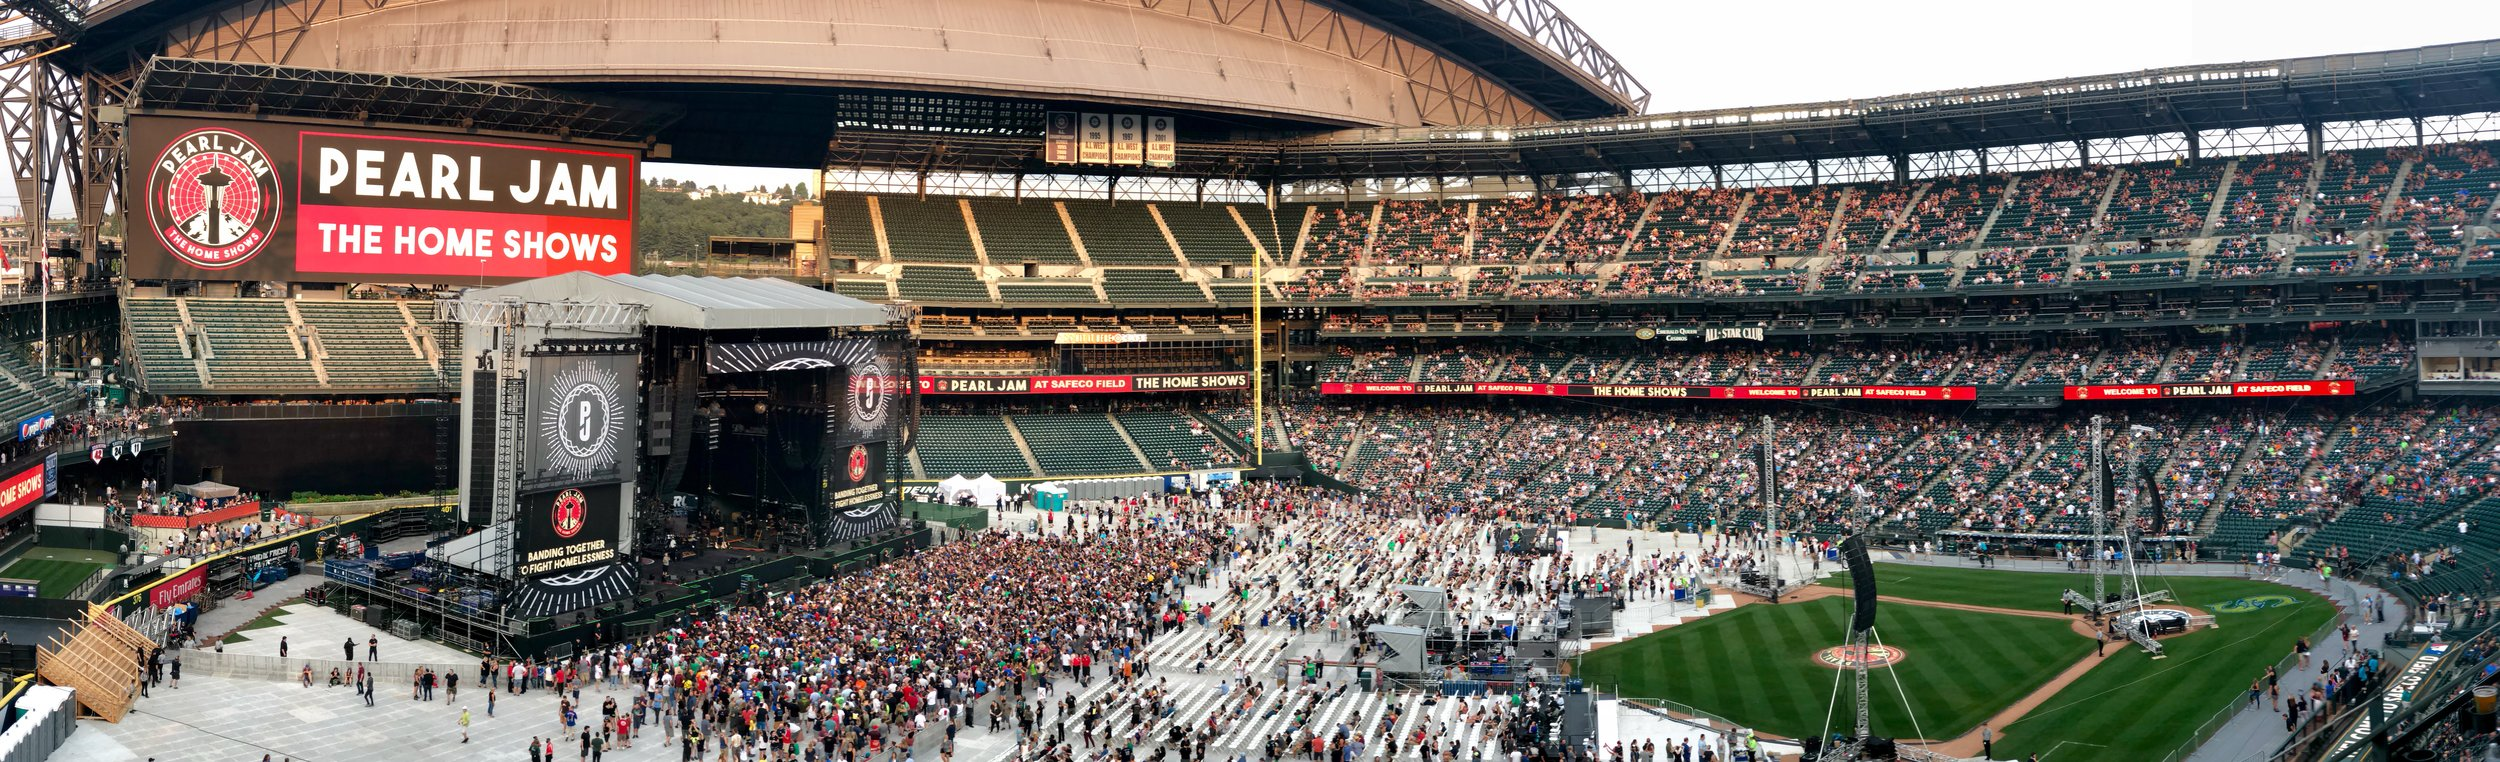 Pano of the stadium just before show time.